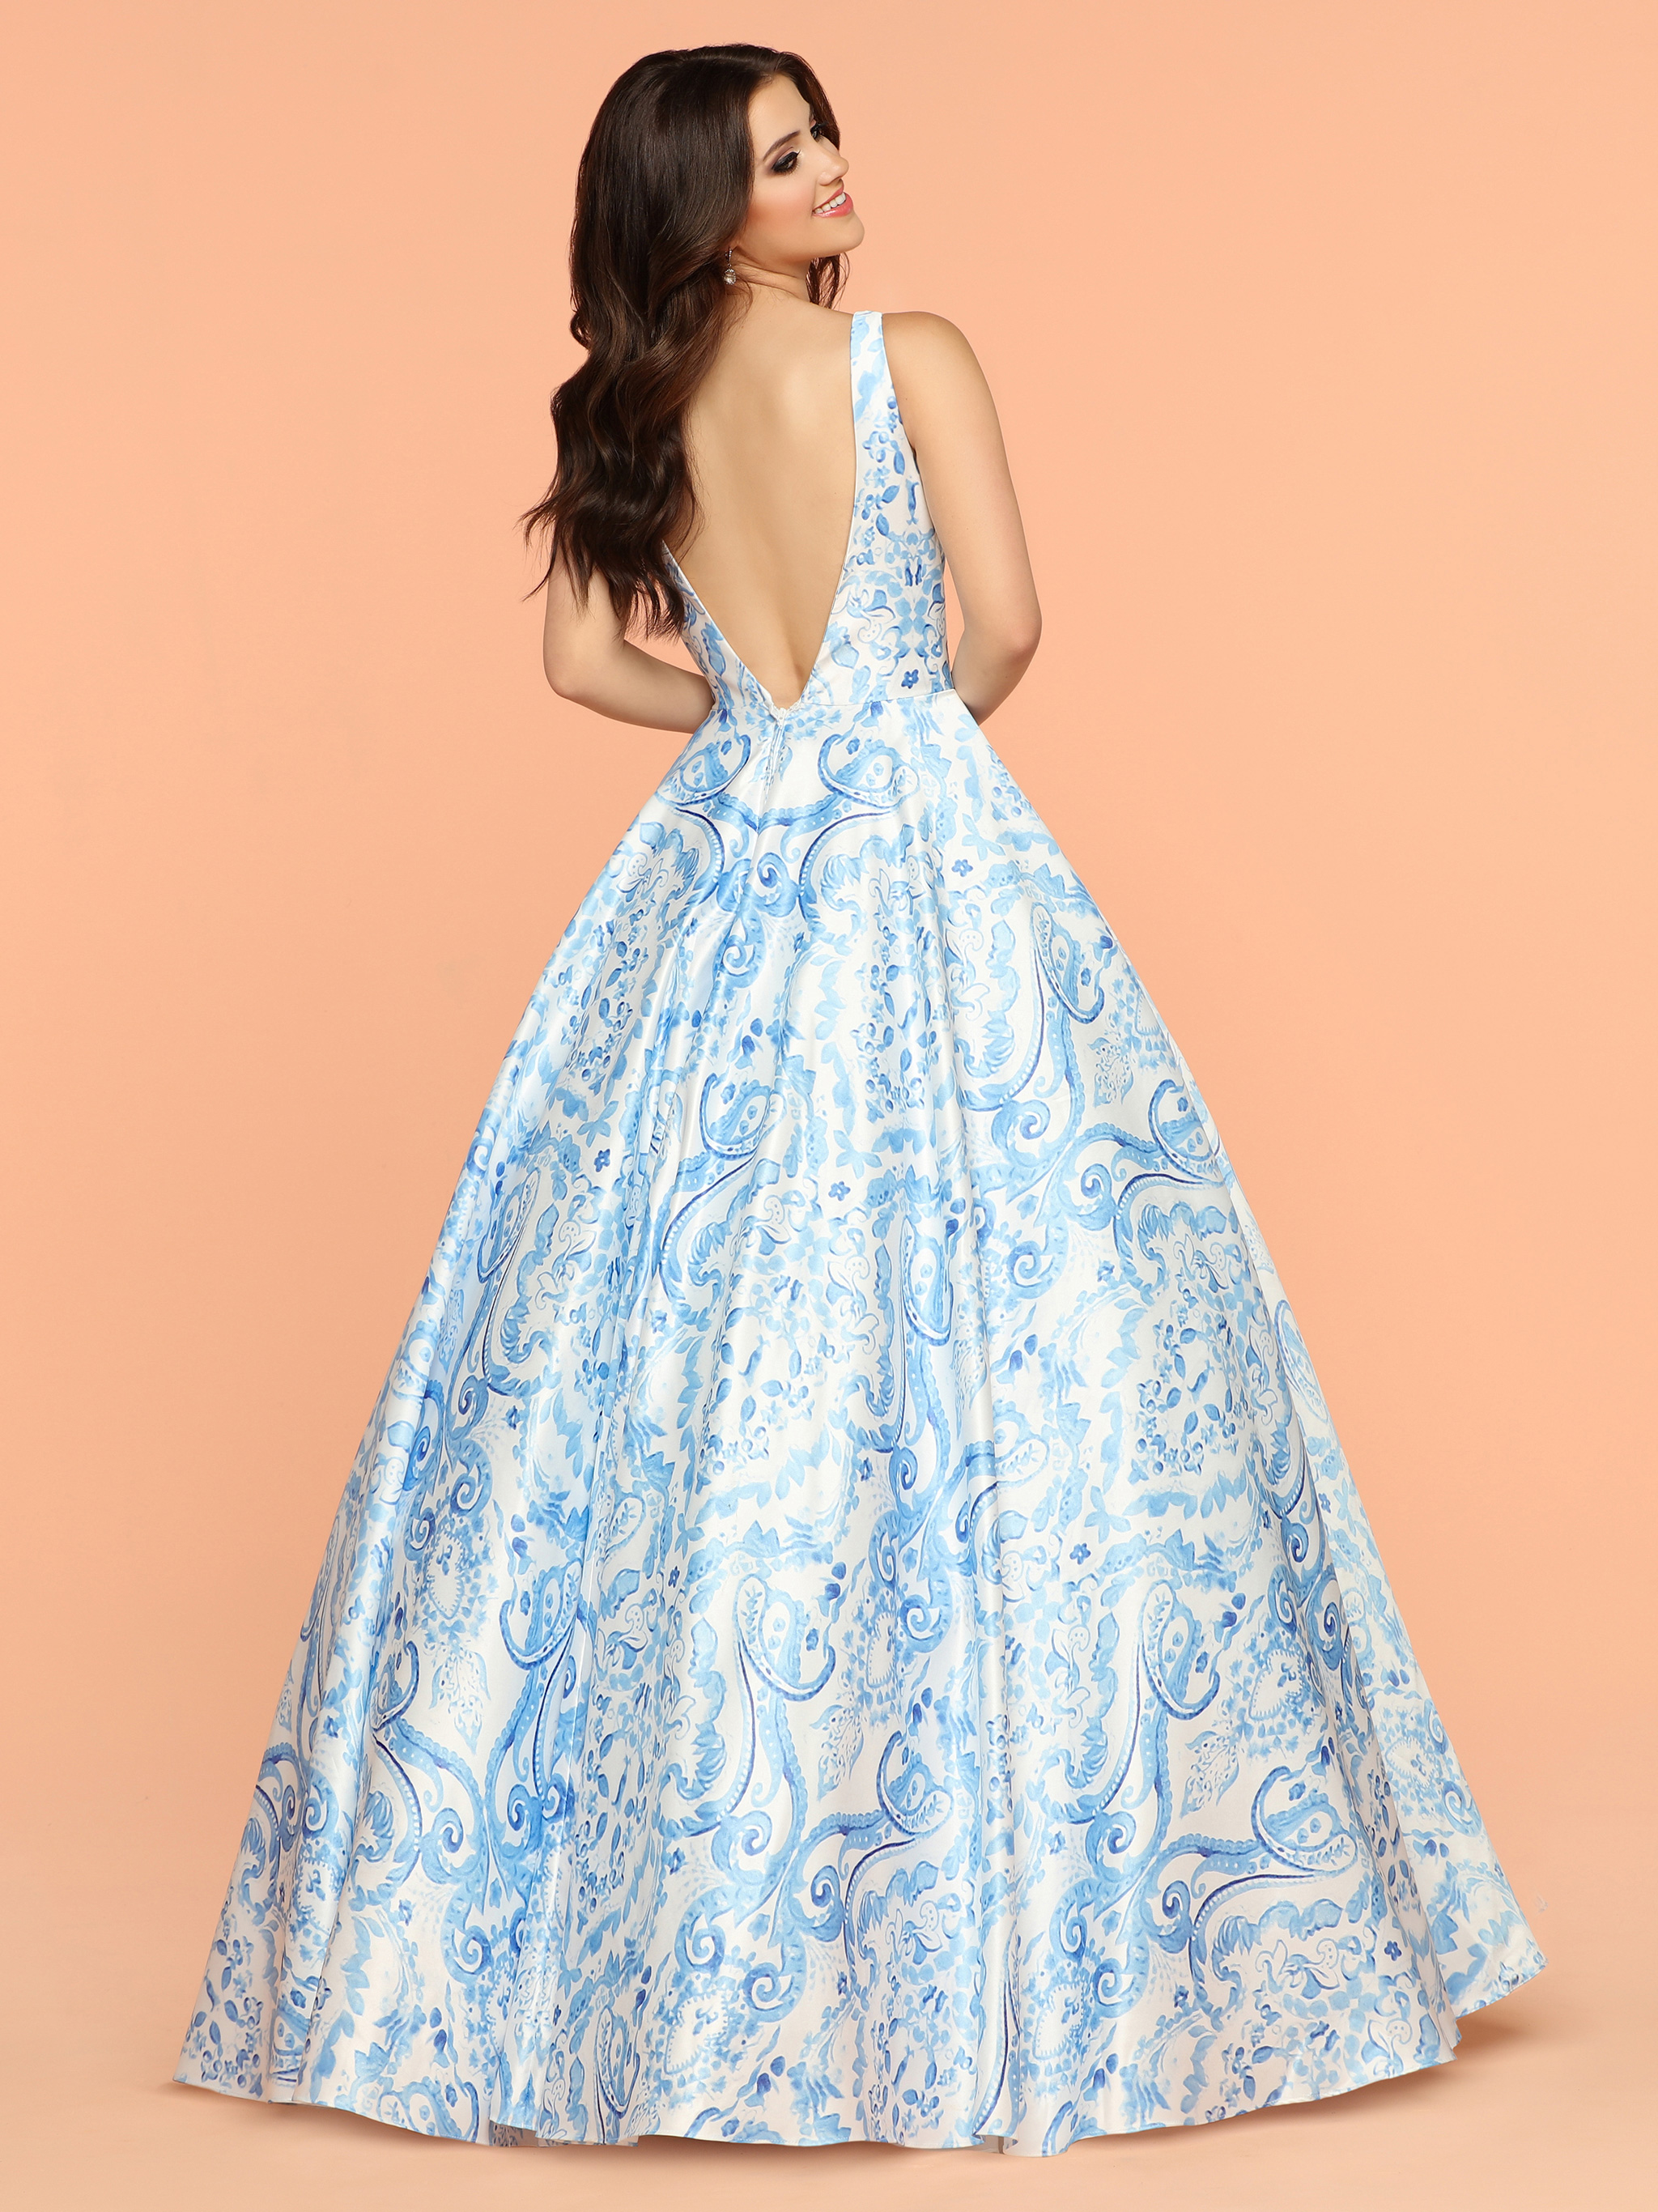 Image showing back view of style #71883